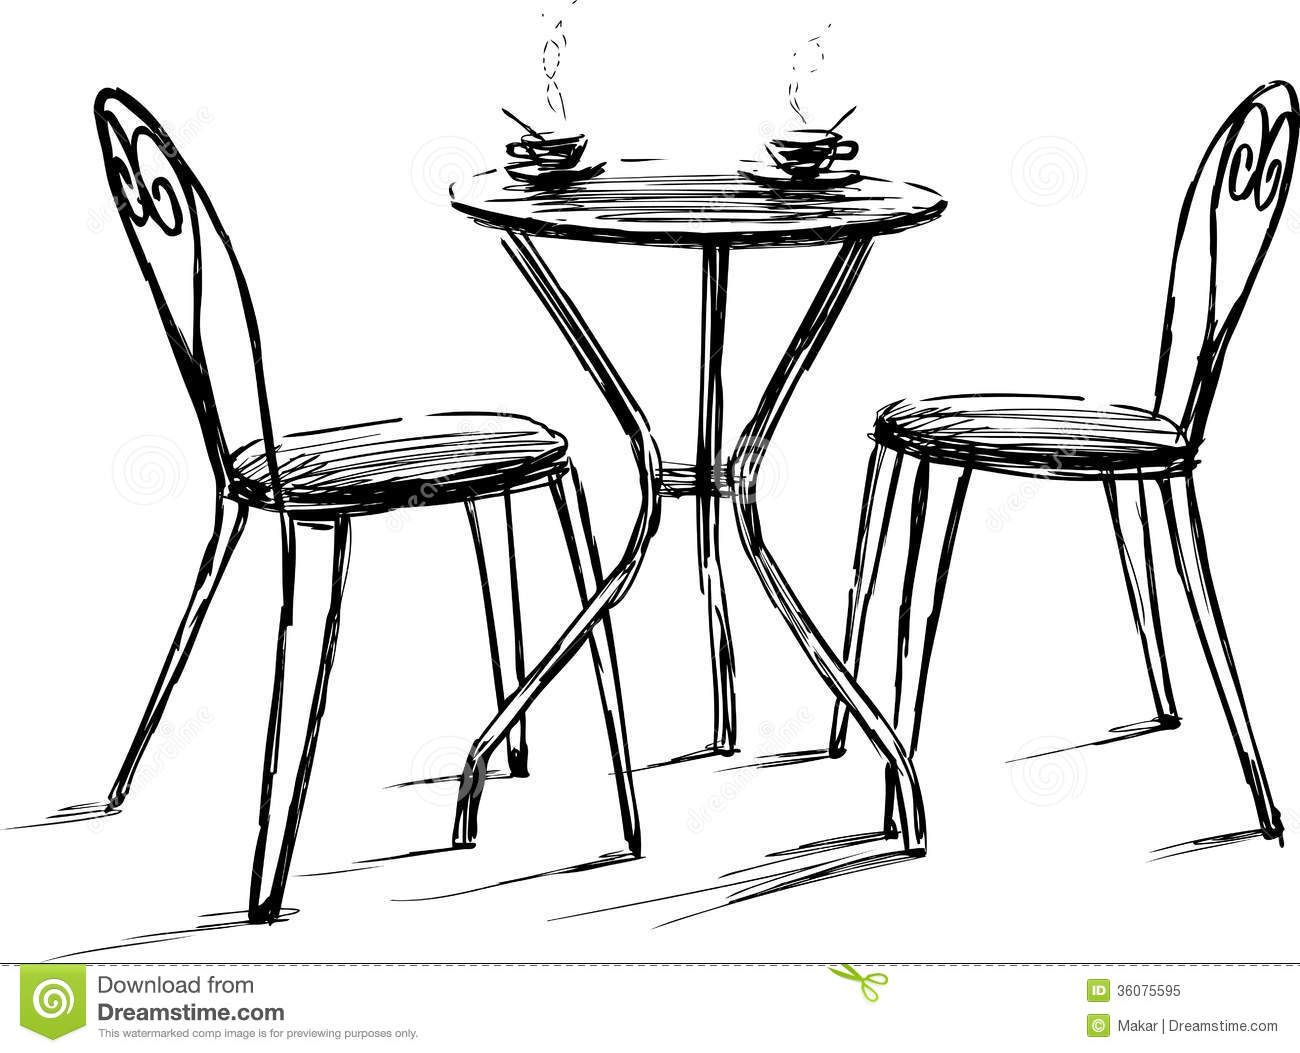 Plan Furniture Vector Free New Design Woodworking French Cafe Cafe Tables Chair